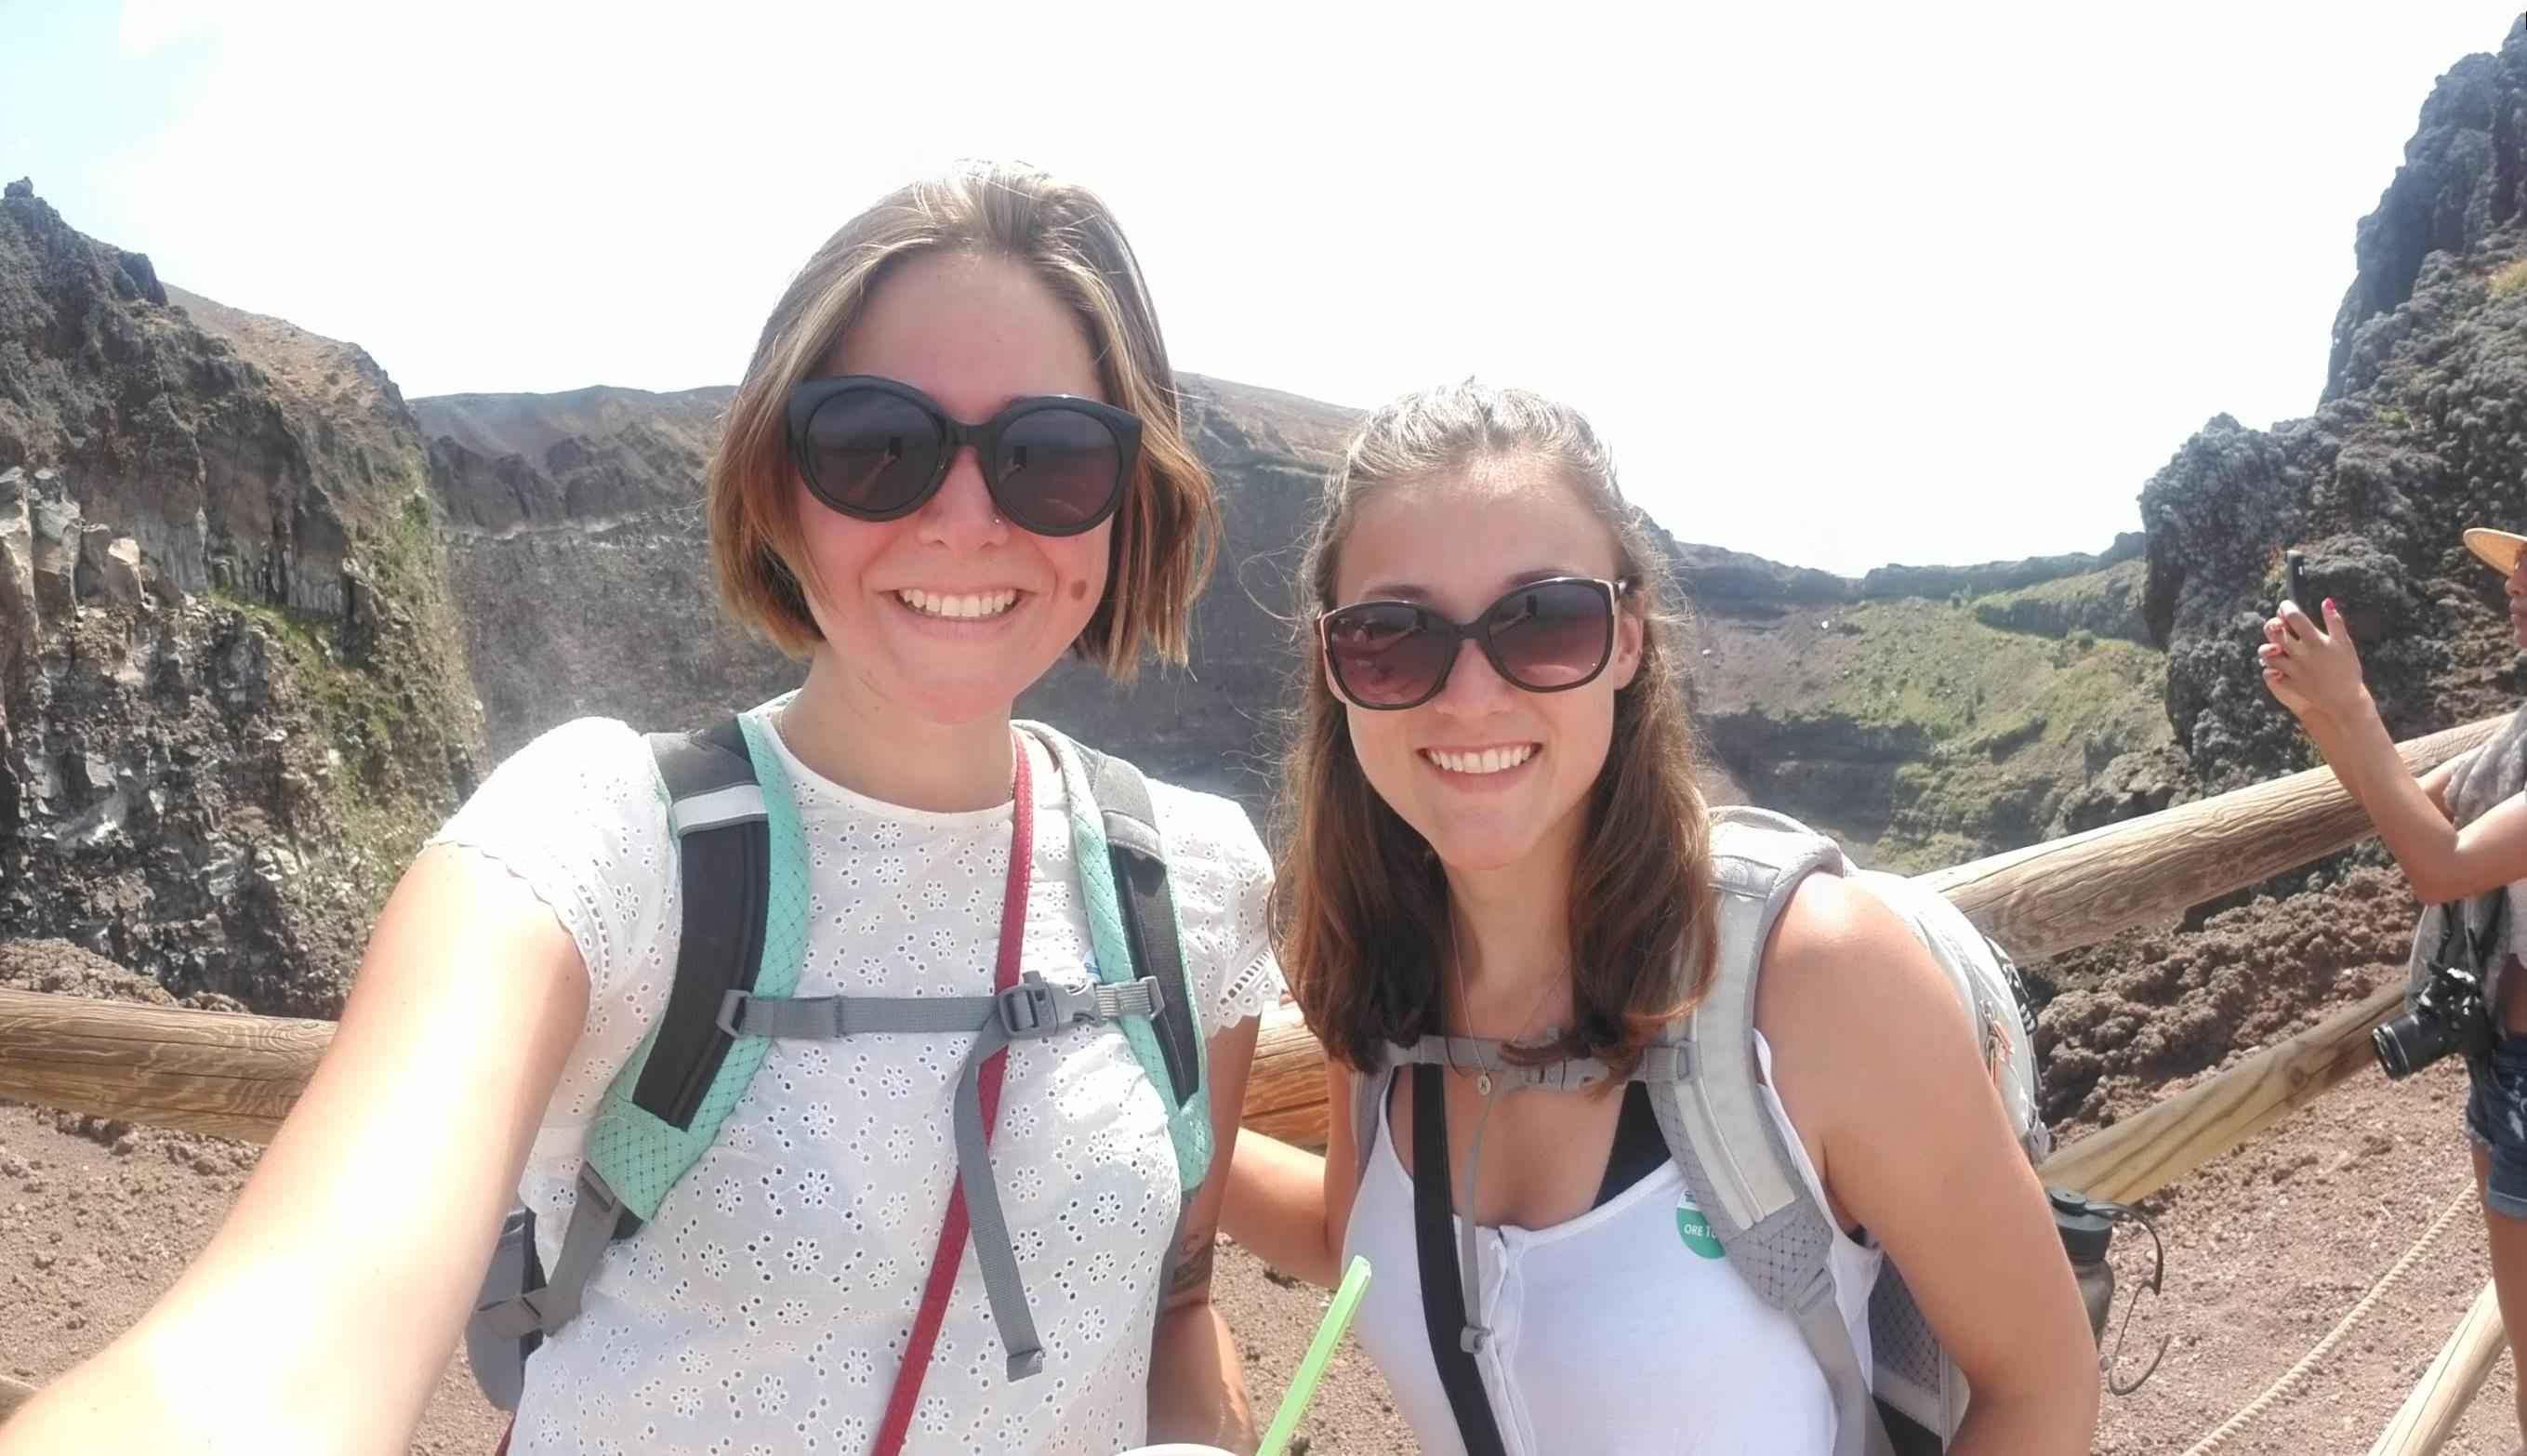 Kylie and I at the top of Mt. Vesuvius